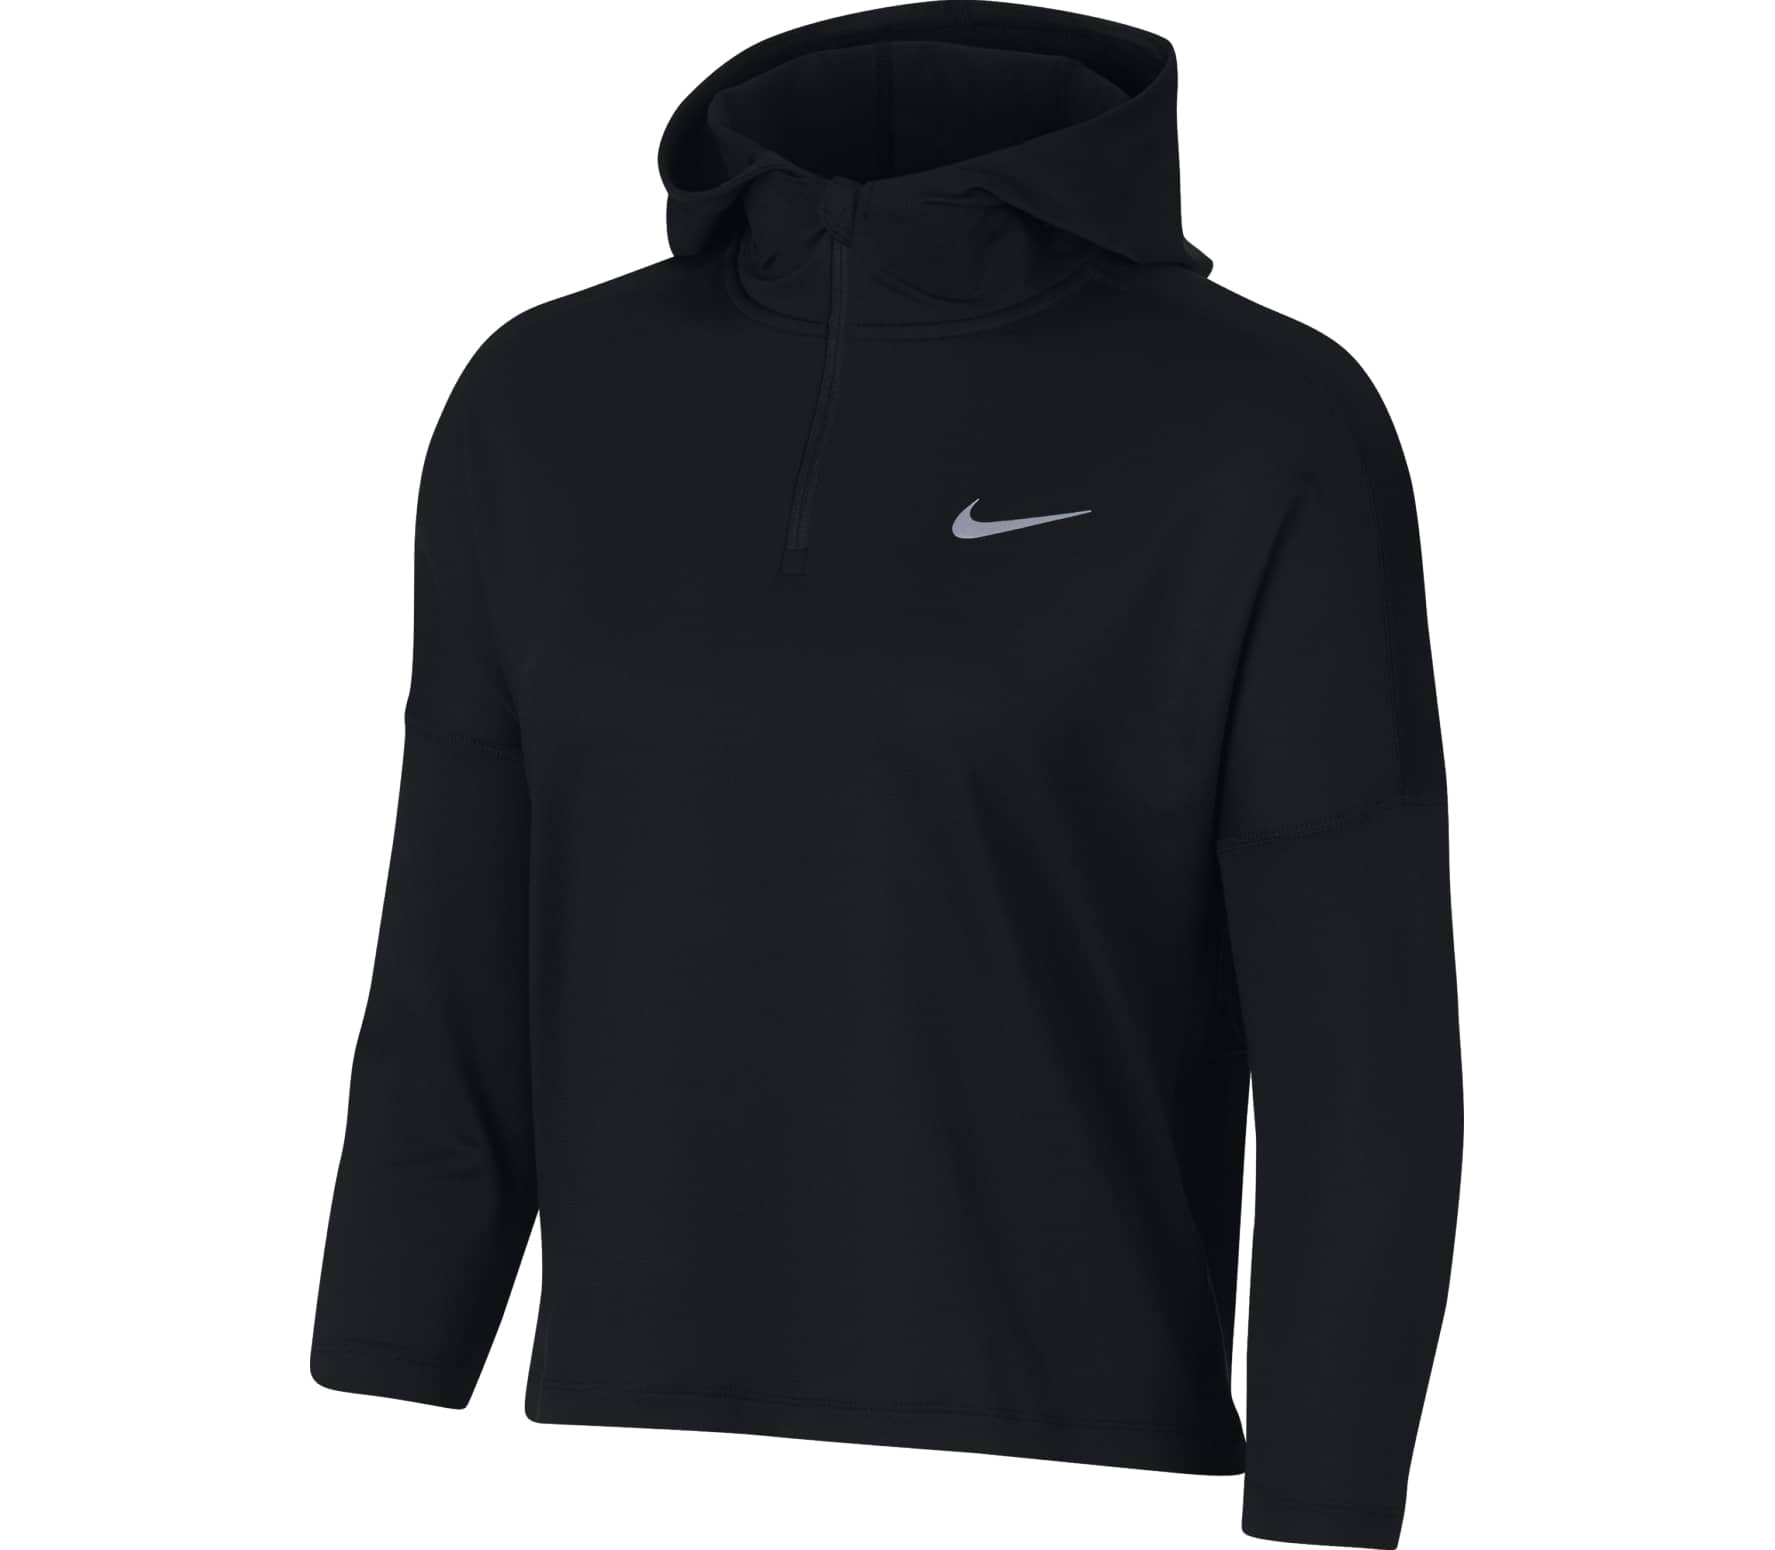 Nike - Dry Element women's running jacket (black) - XS thumbnail